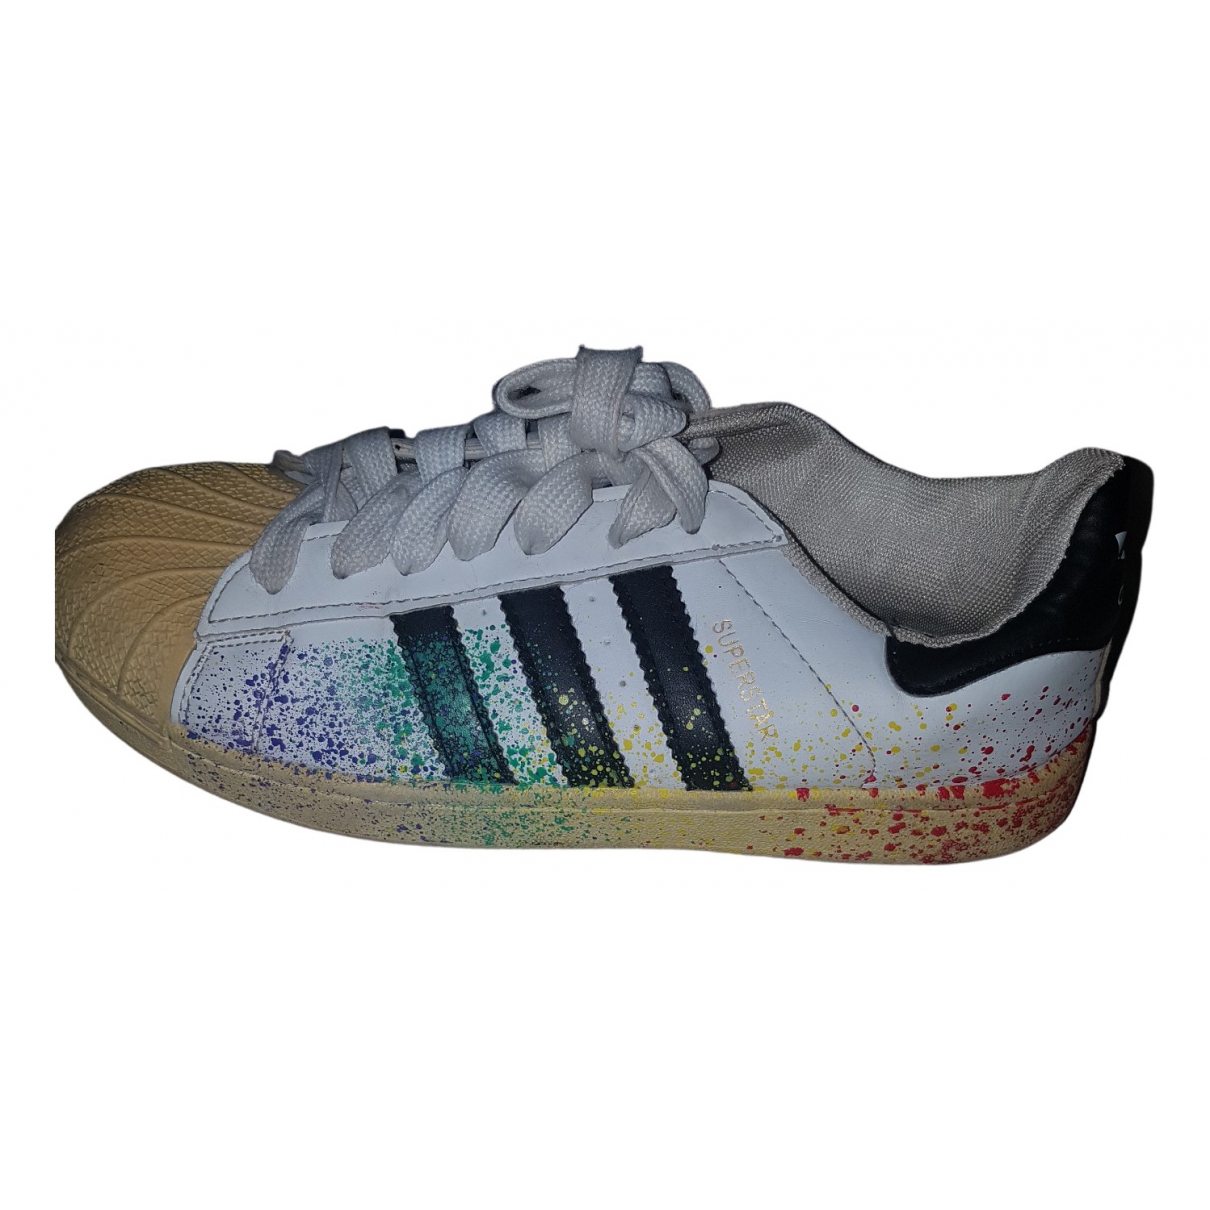 Adidas Superstar White Leather Trainers for Men 40 EU